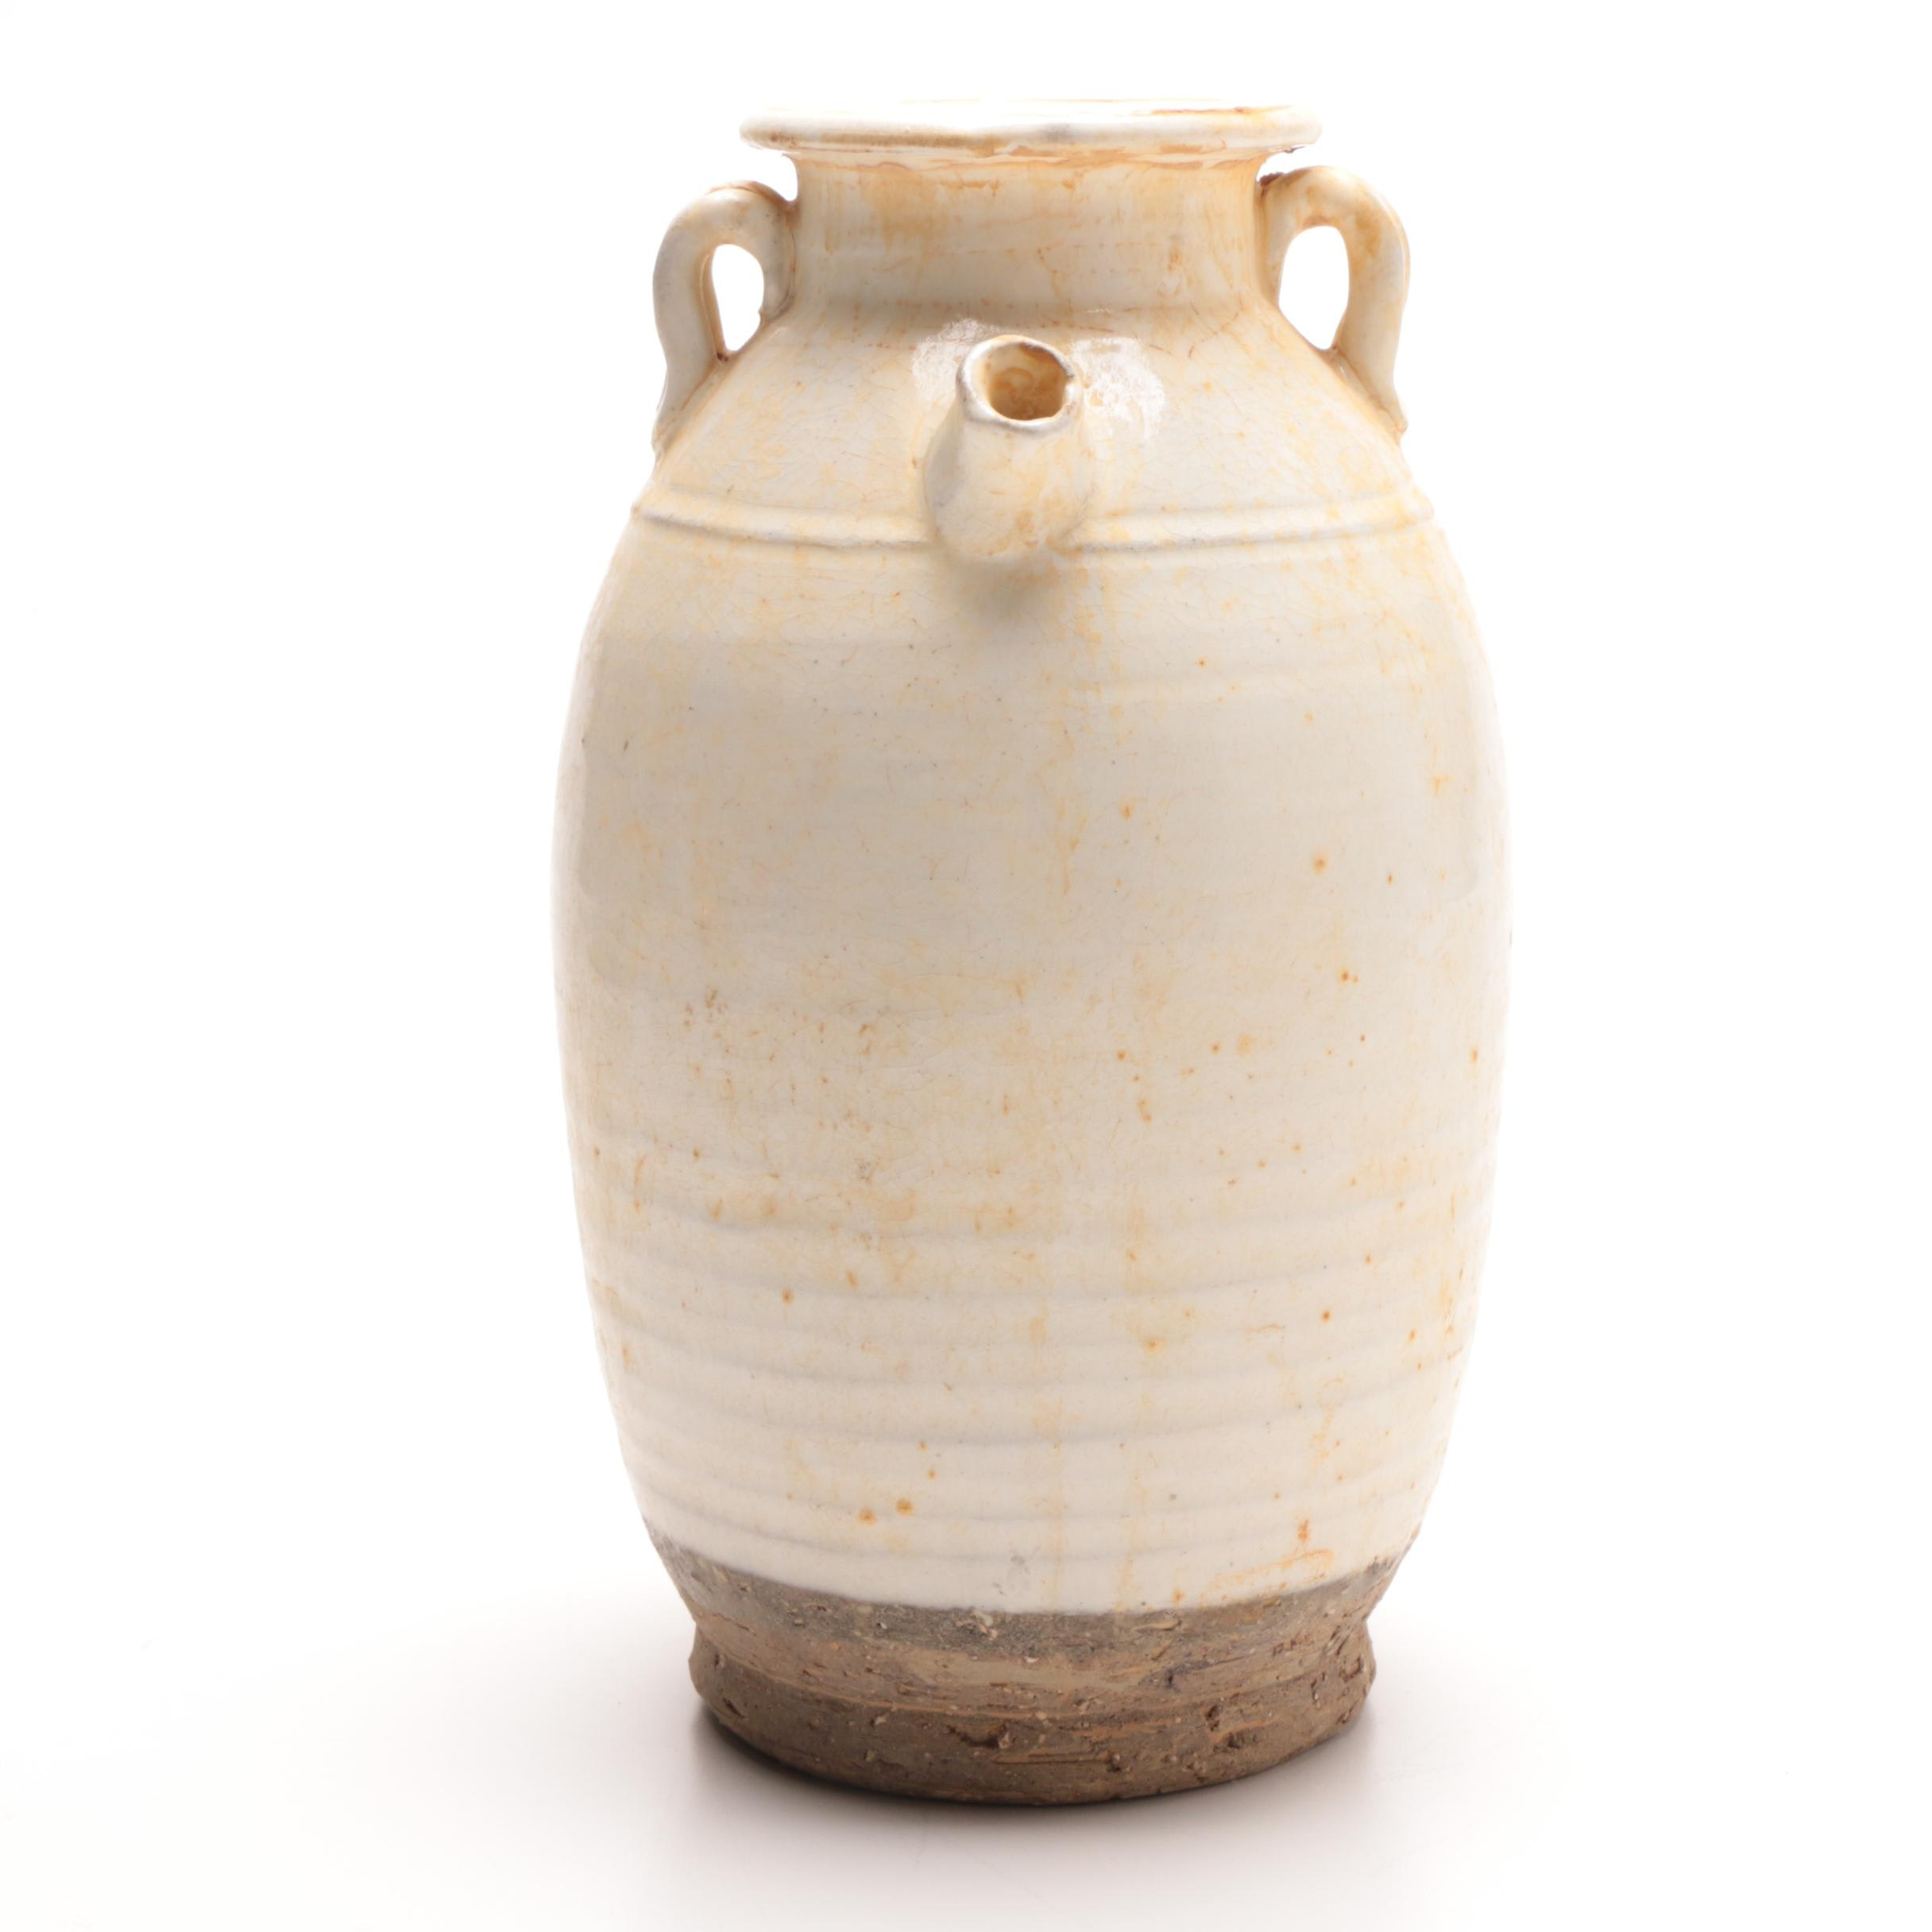 Vintage Chinese White Ceramic Jar